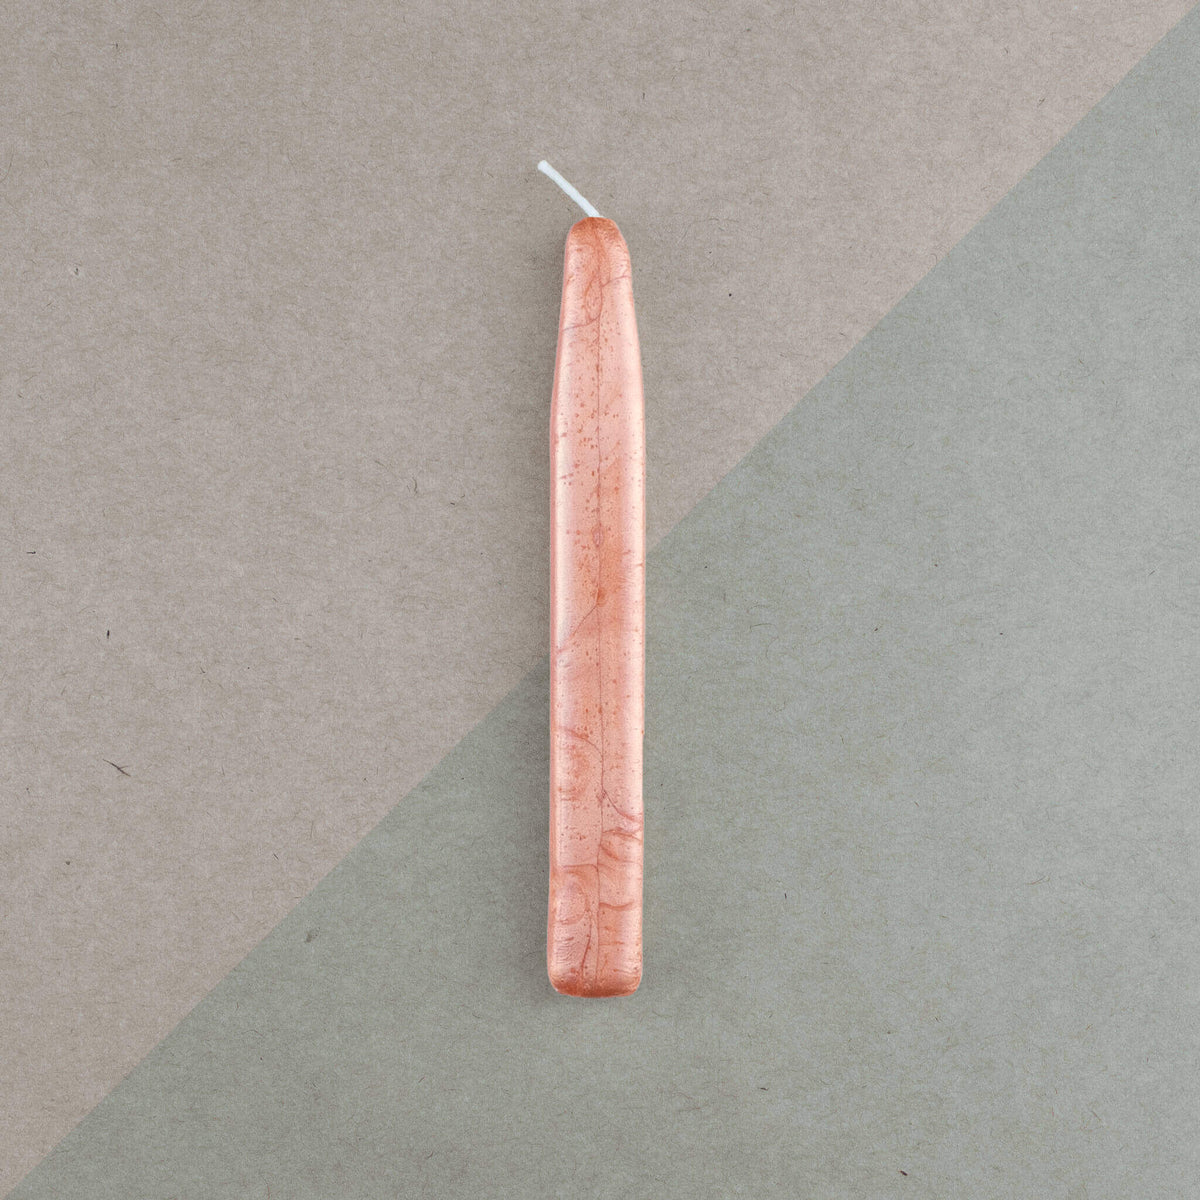 Kustom Haus Traditional Sealing Wax Stick with Wick - Tangerine